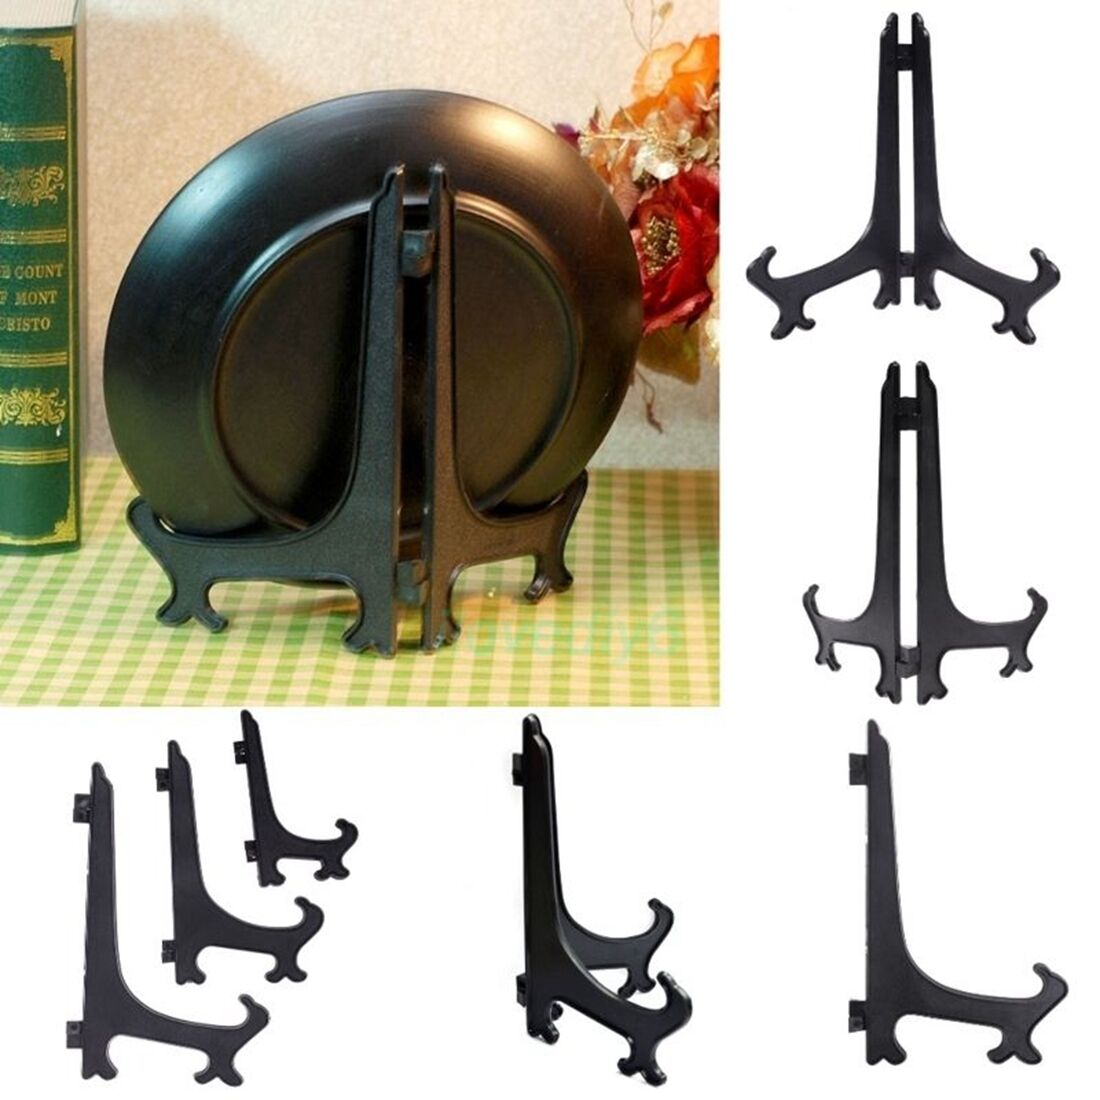 Fullsize Of Plate Display Stands